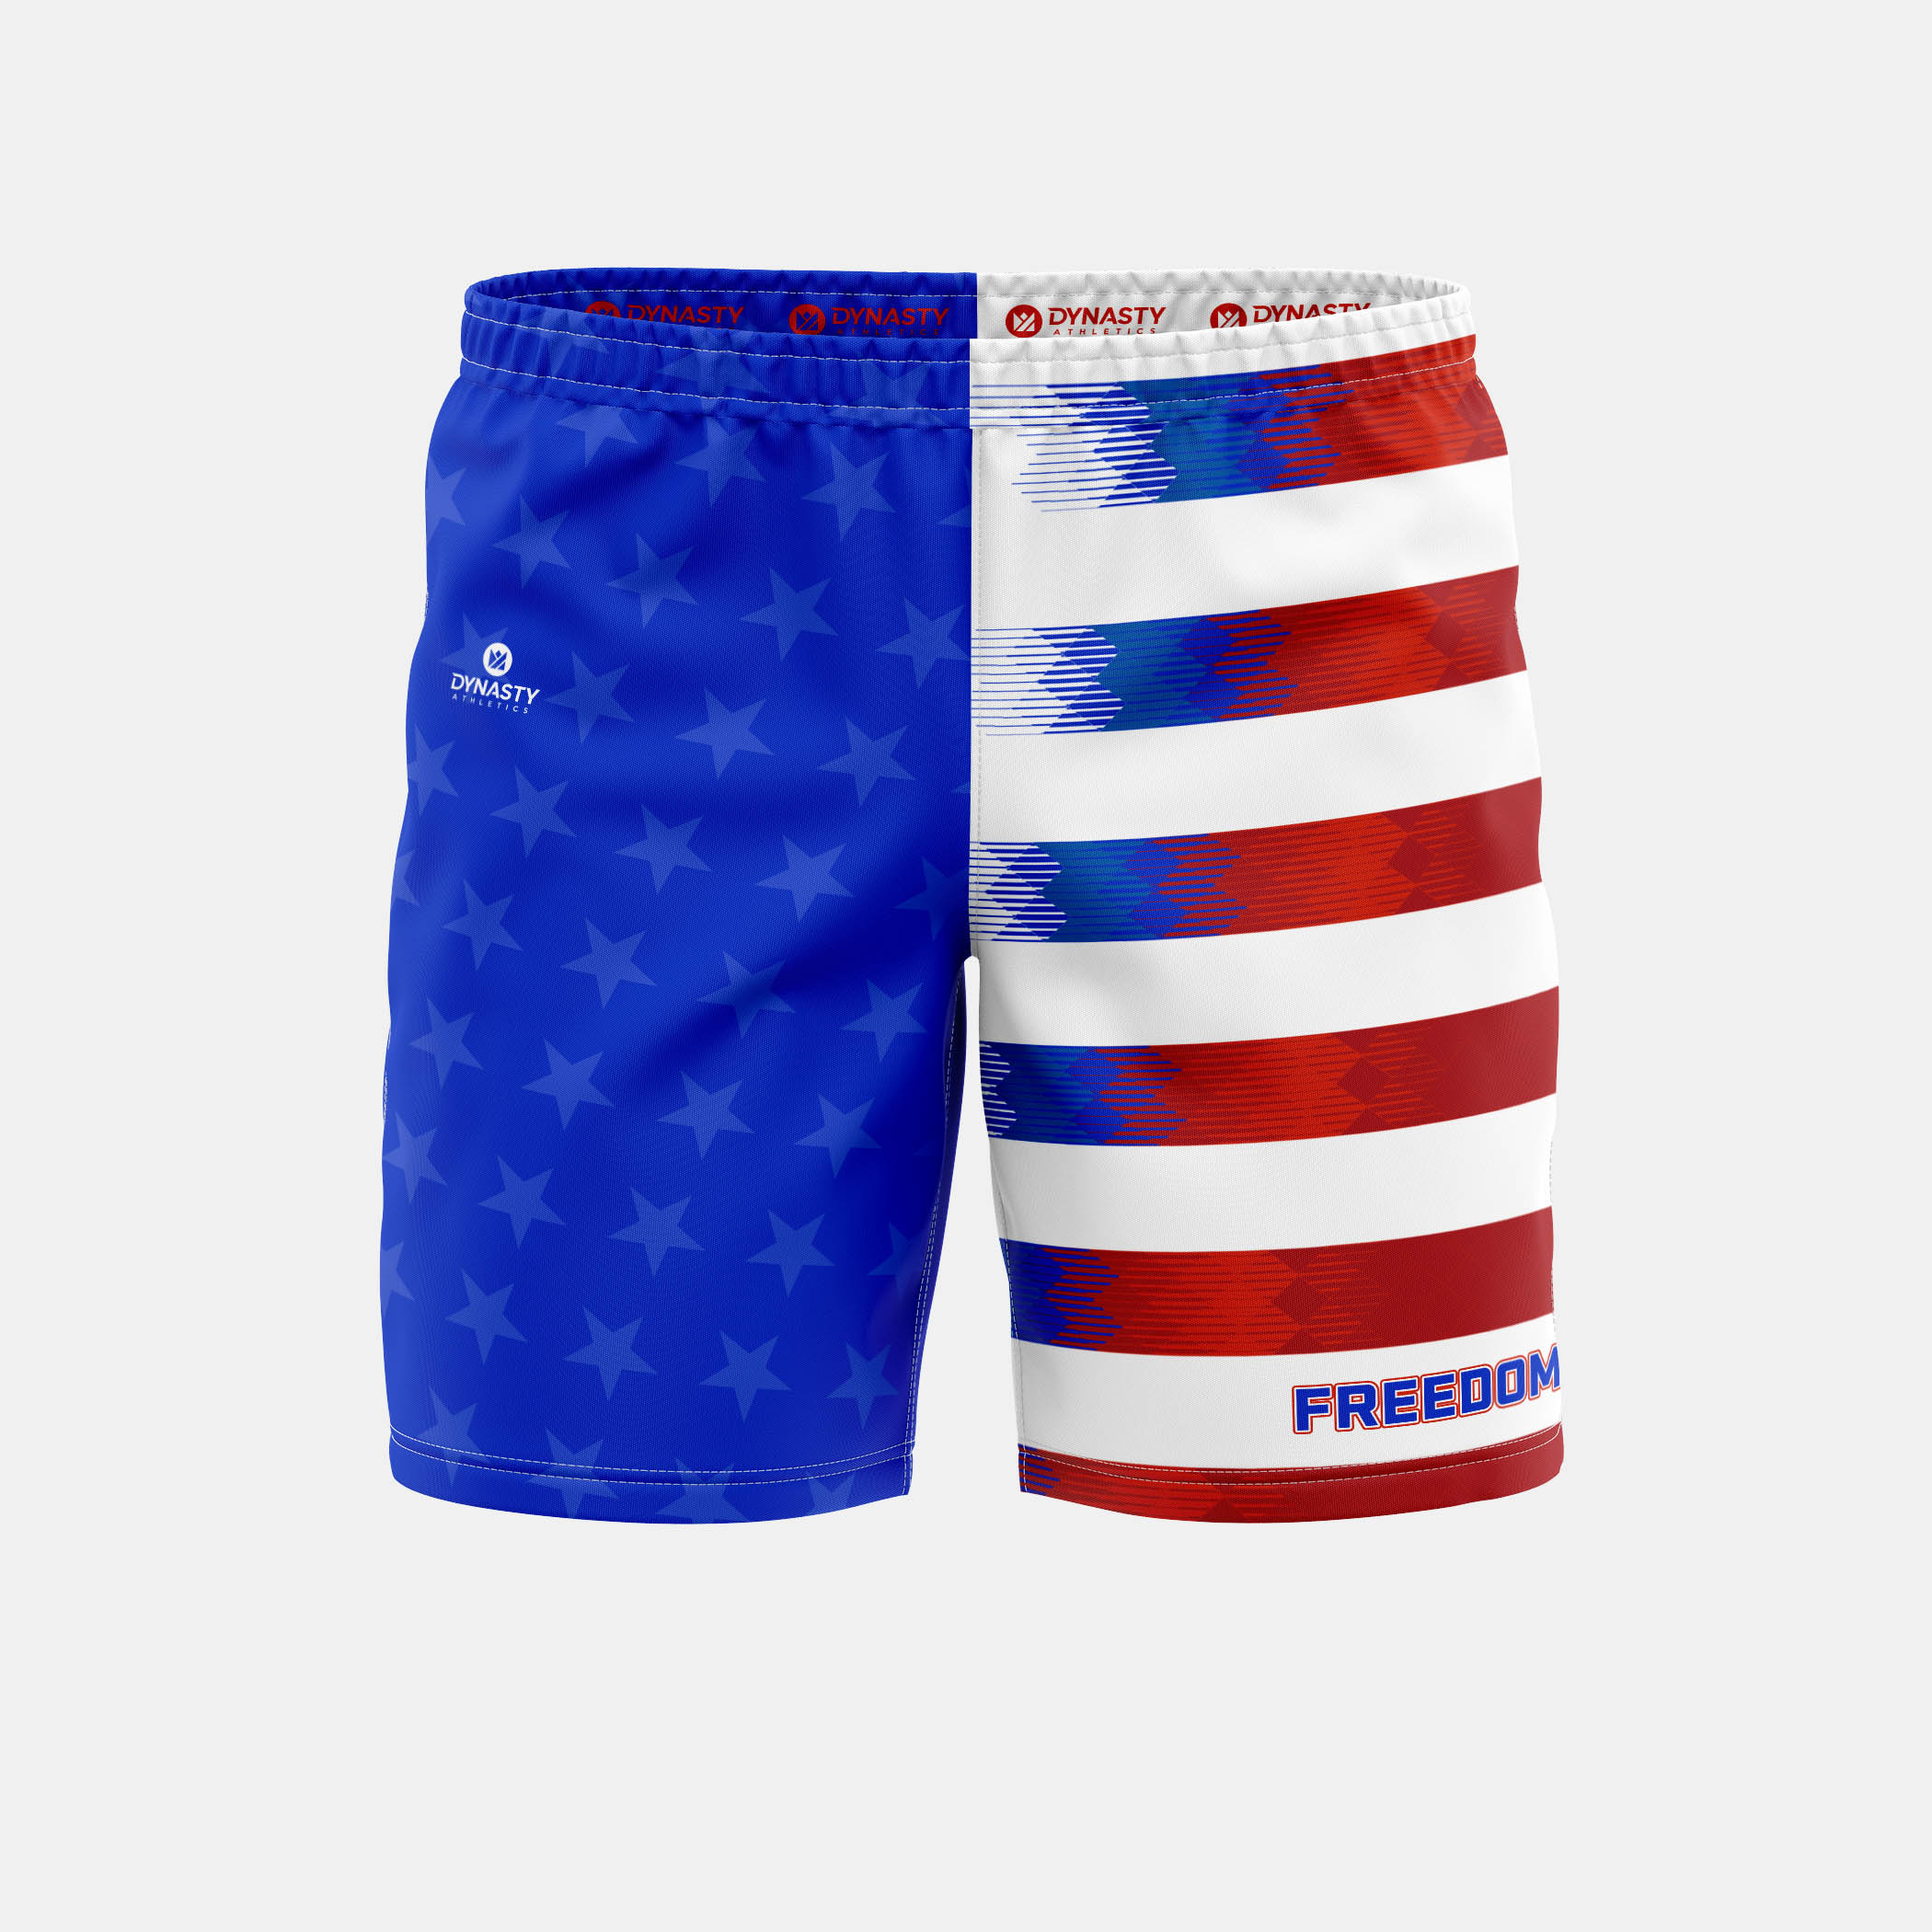 Freedom VB Shorts Front View edited 1